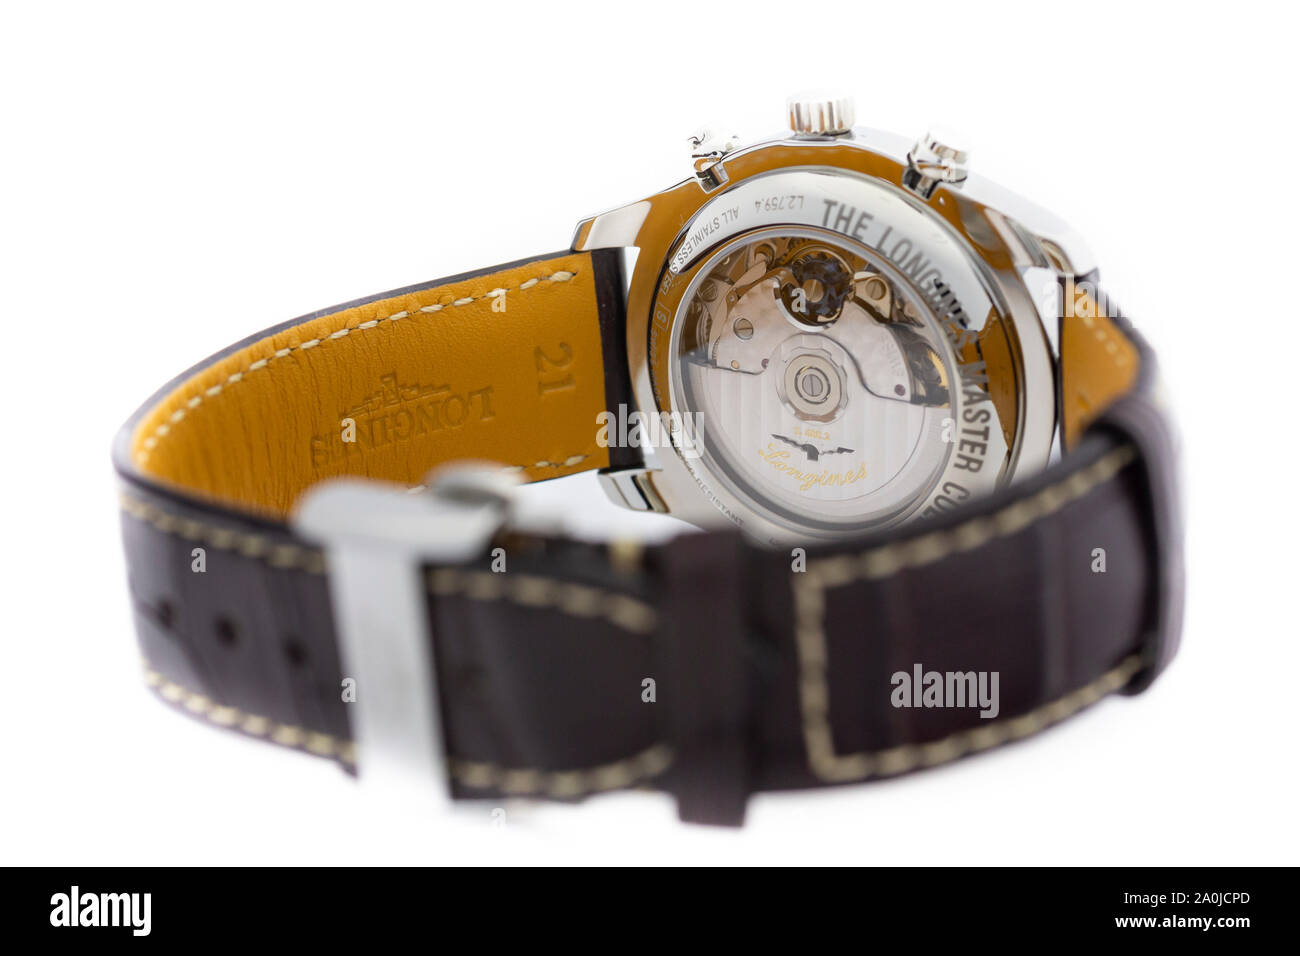 Saint-Imier, Switzerland September 15 2019 - Longines Men's Master Collection Automatic Date Chronograph Alligator Leather Strap Watch, Brown/White Stock Photo